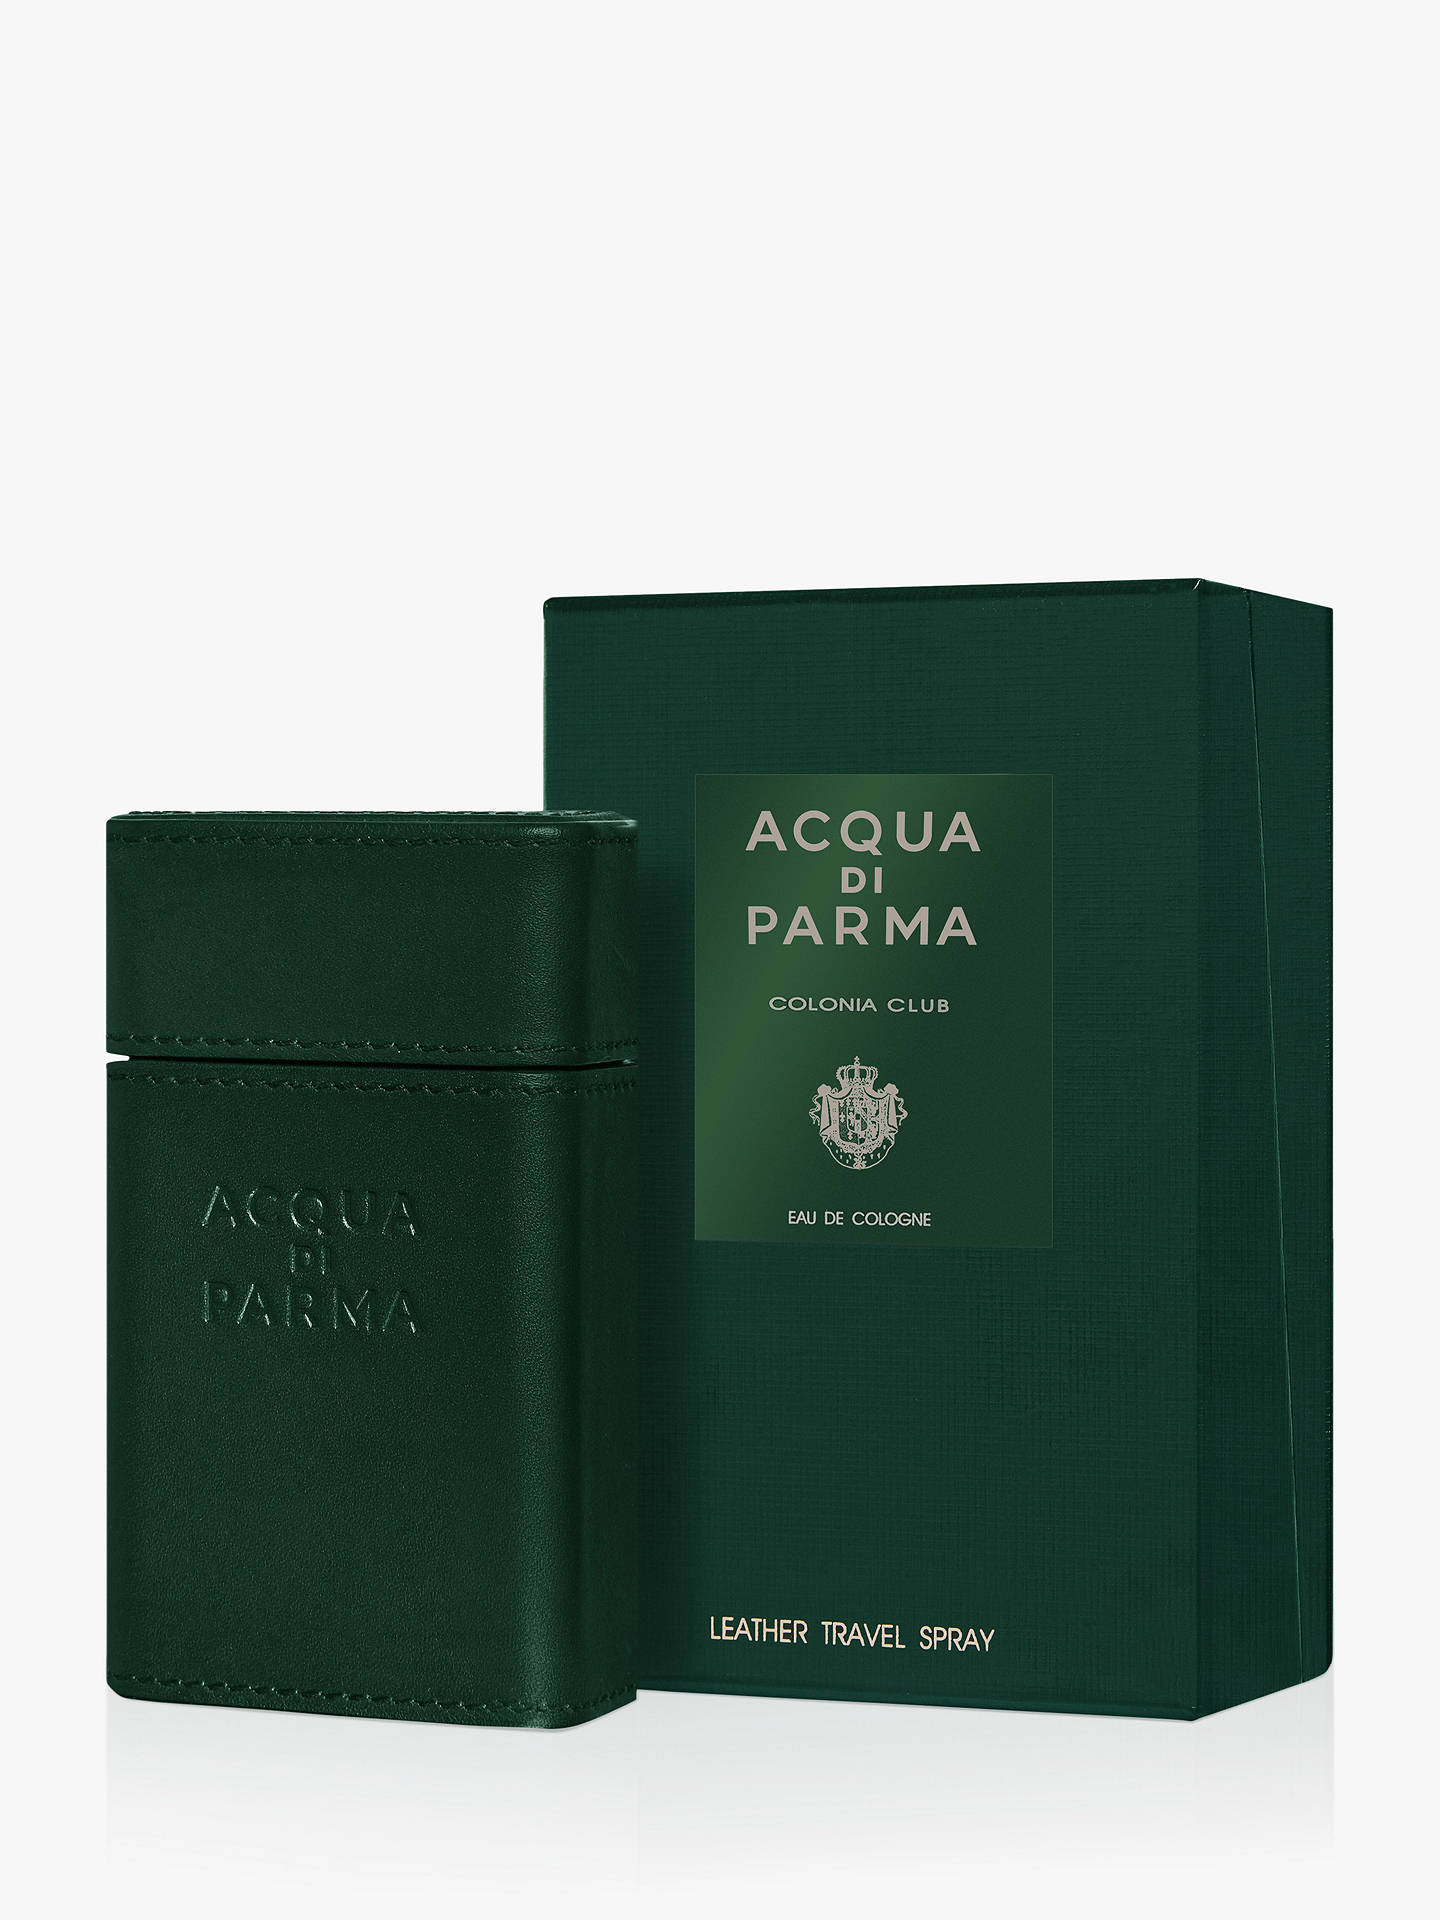 b1a3bdc84f26 Acqua di Parma Colonia Club Eau de Cologne Travel Spray, 30ml